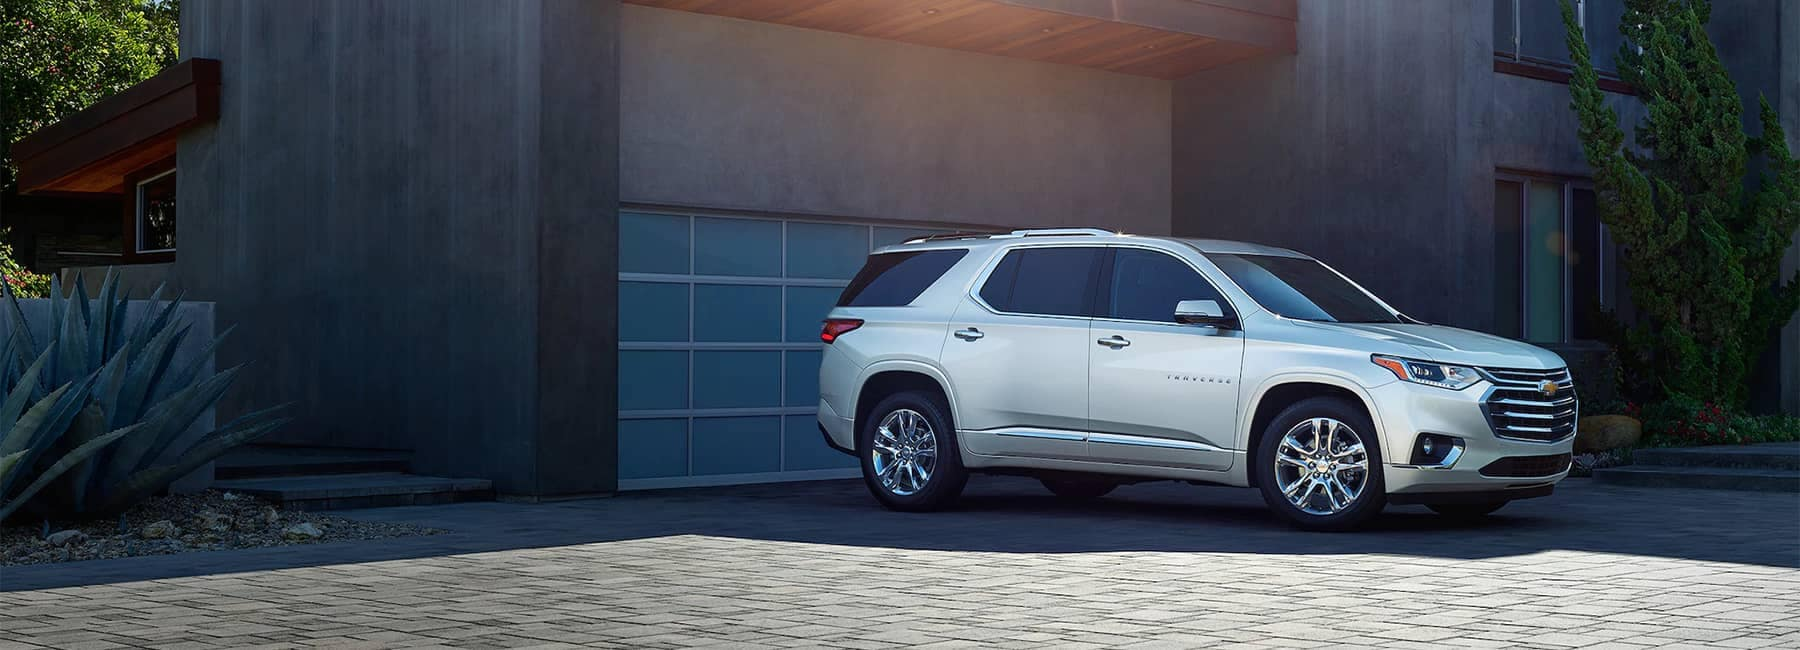 2020 White Chevrolet Traverse Parked Angle